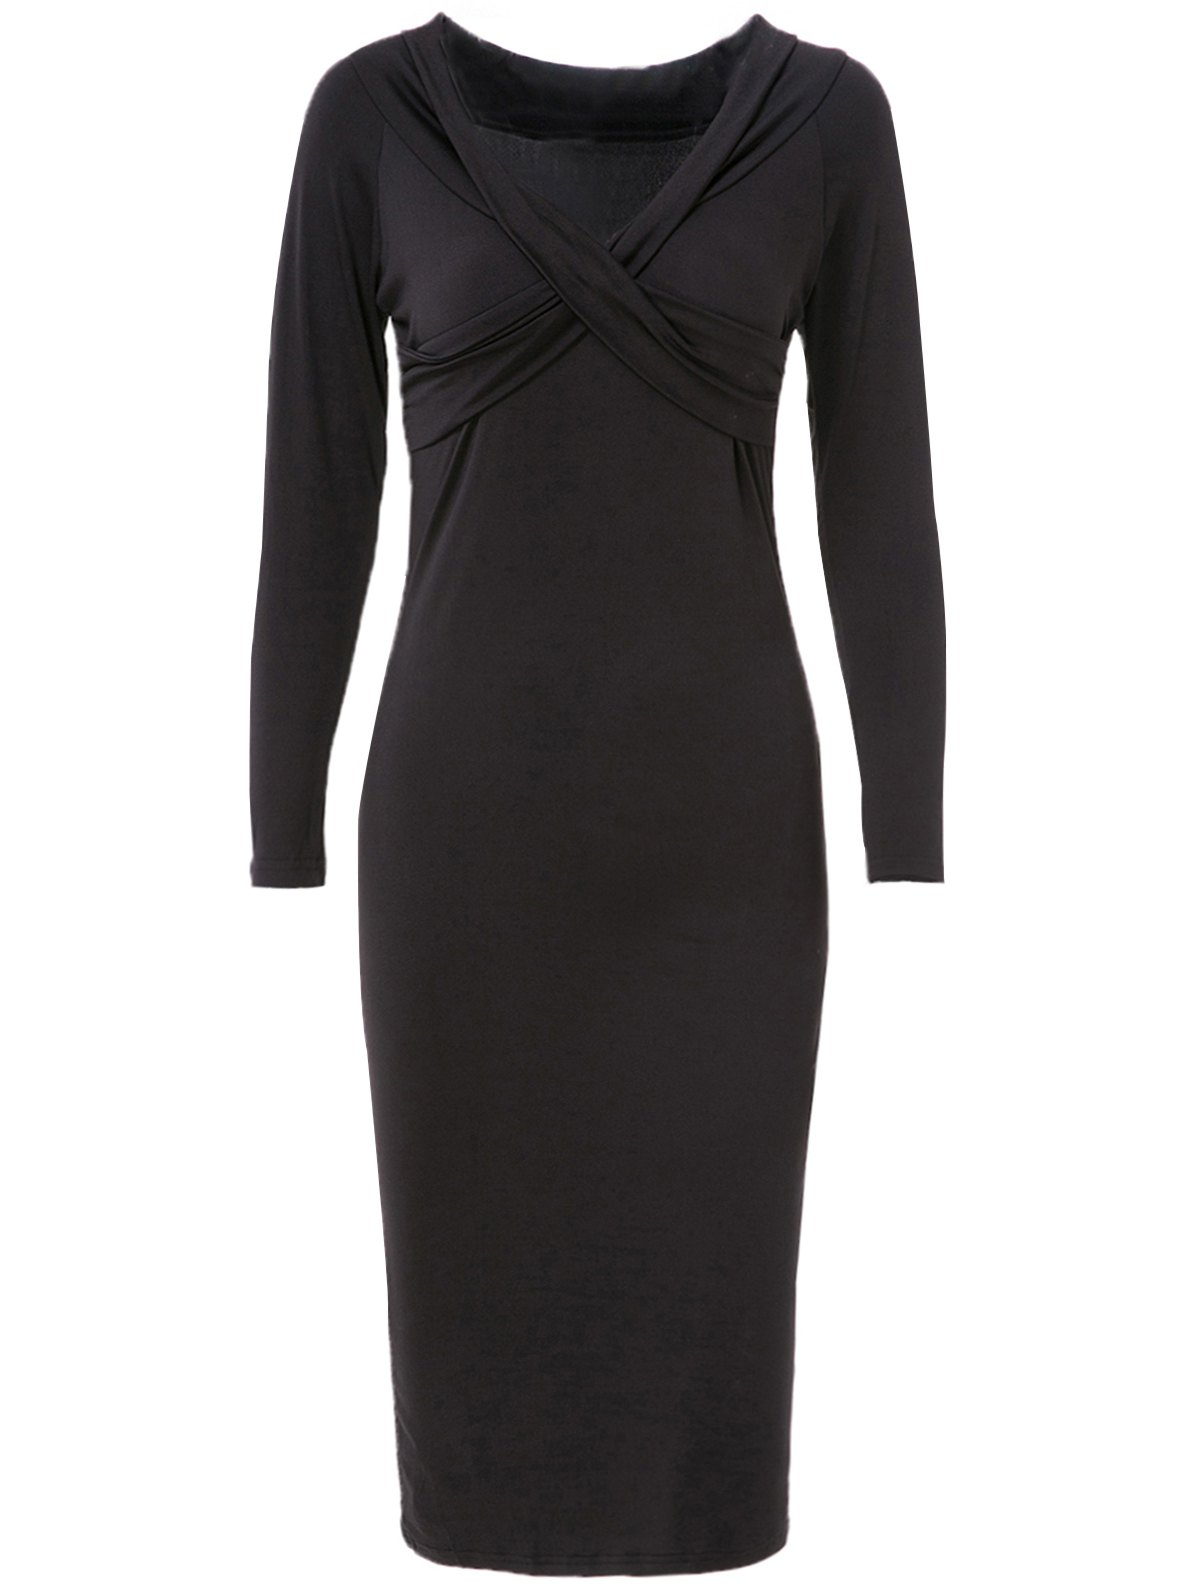 Pure Color Long Sleeve V-Neck Dress For Women - BLACK S